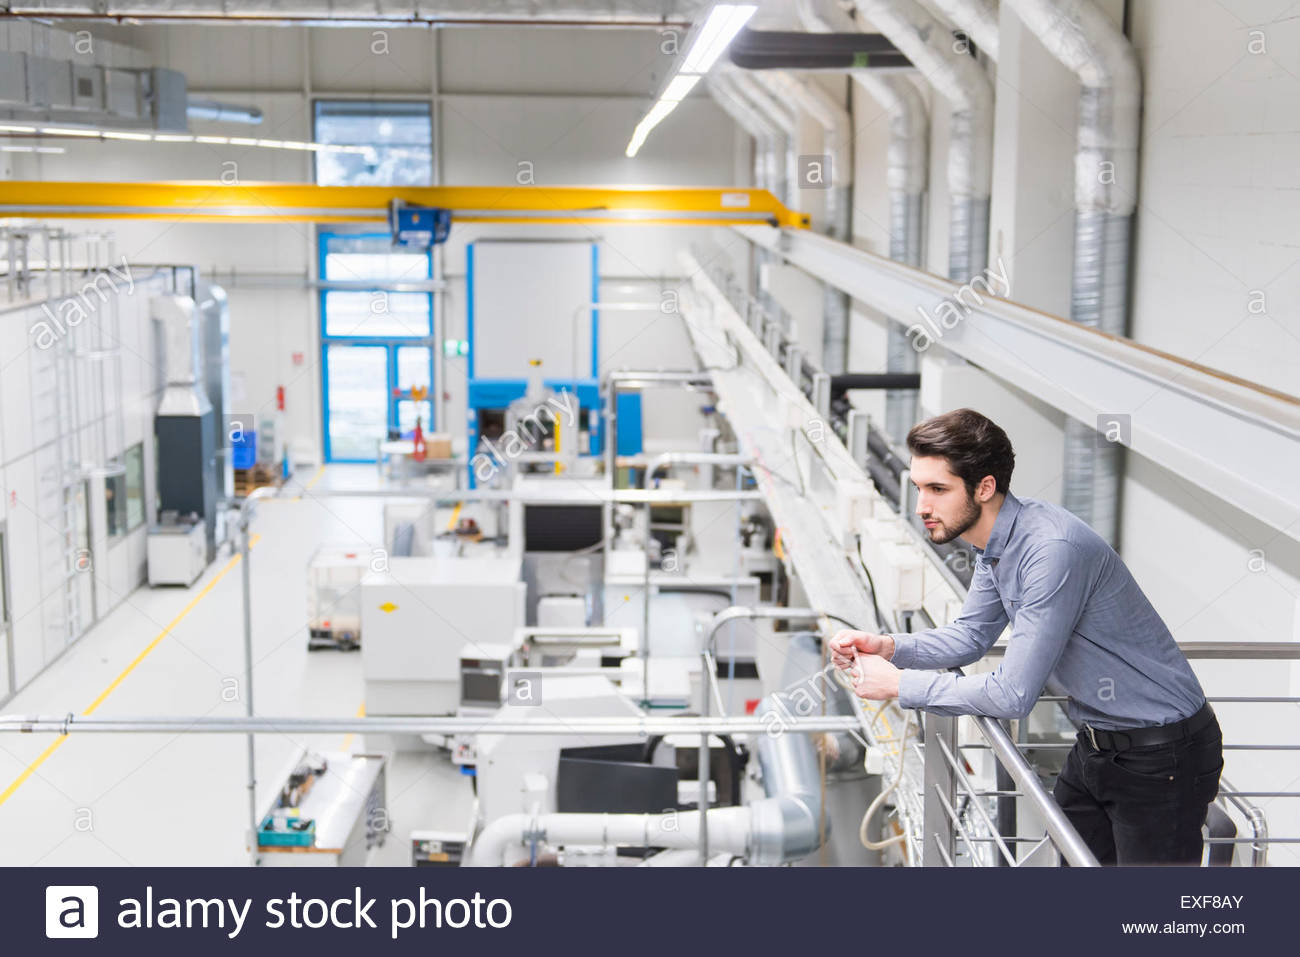 Male worker standing on balcony at tool manufacturing plant - Stock Image